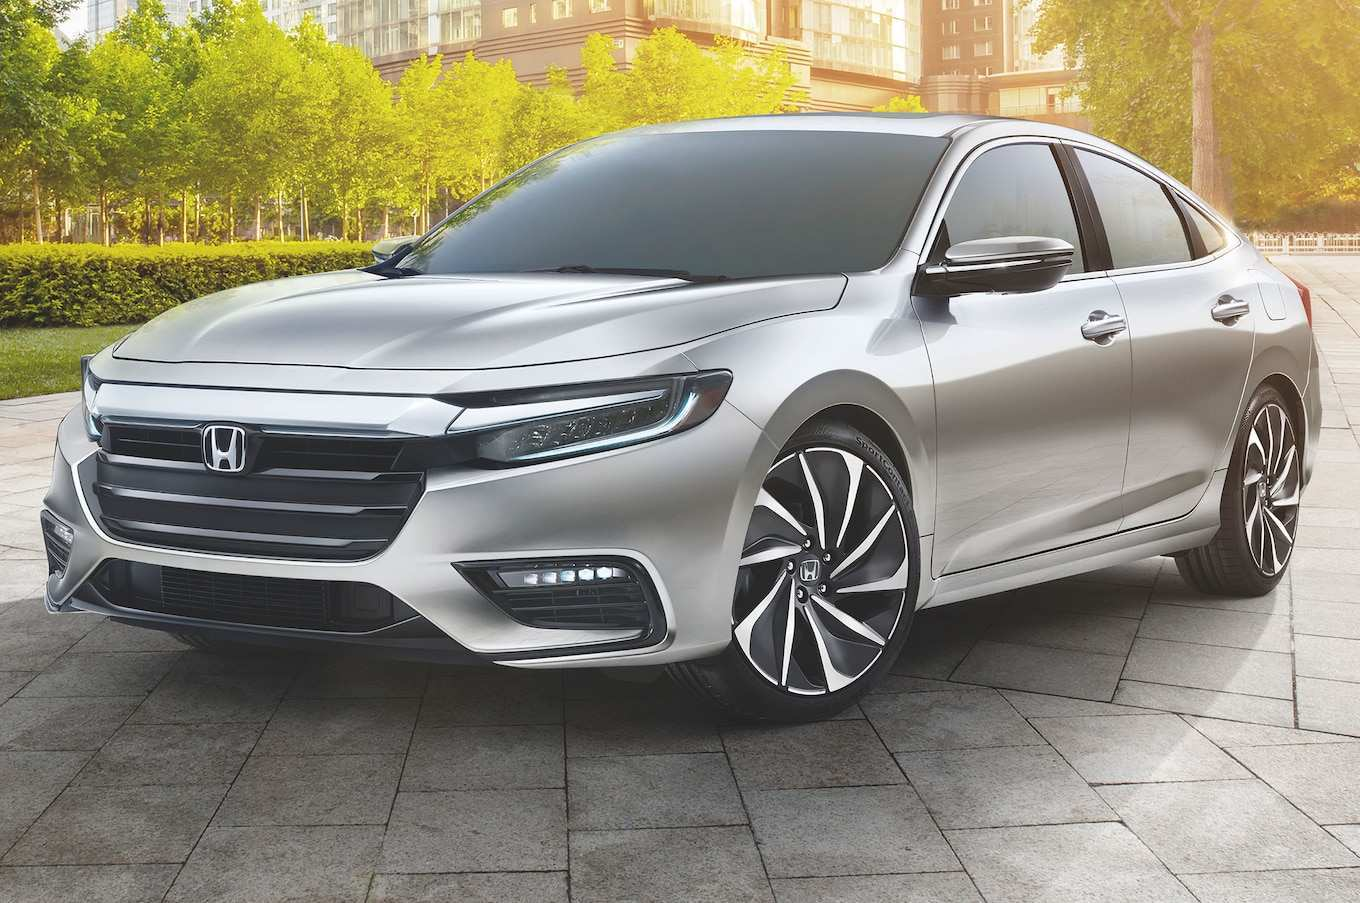 28 Concept of 2019 Honda Accord Phev New Concept for 2019 Honda Accord Phev